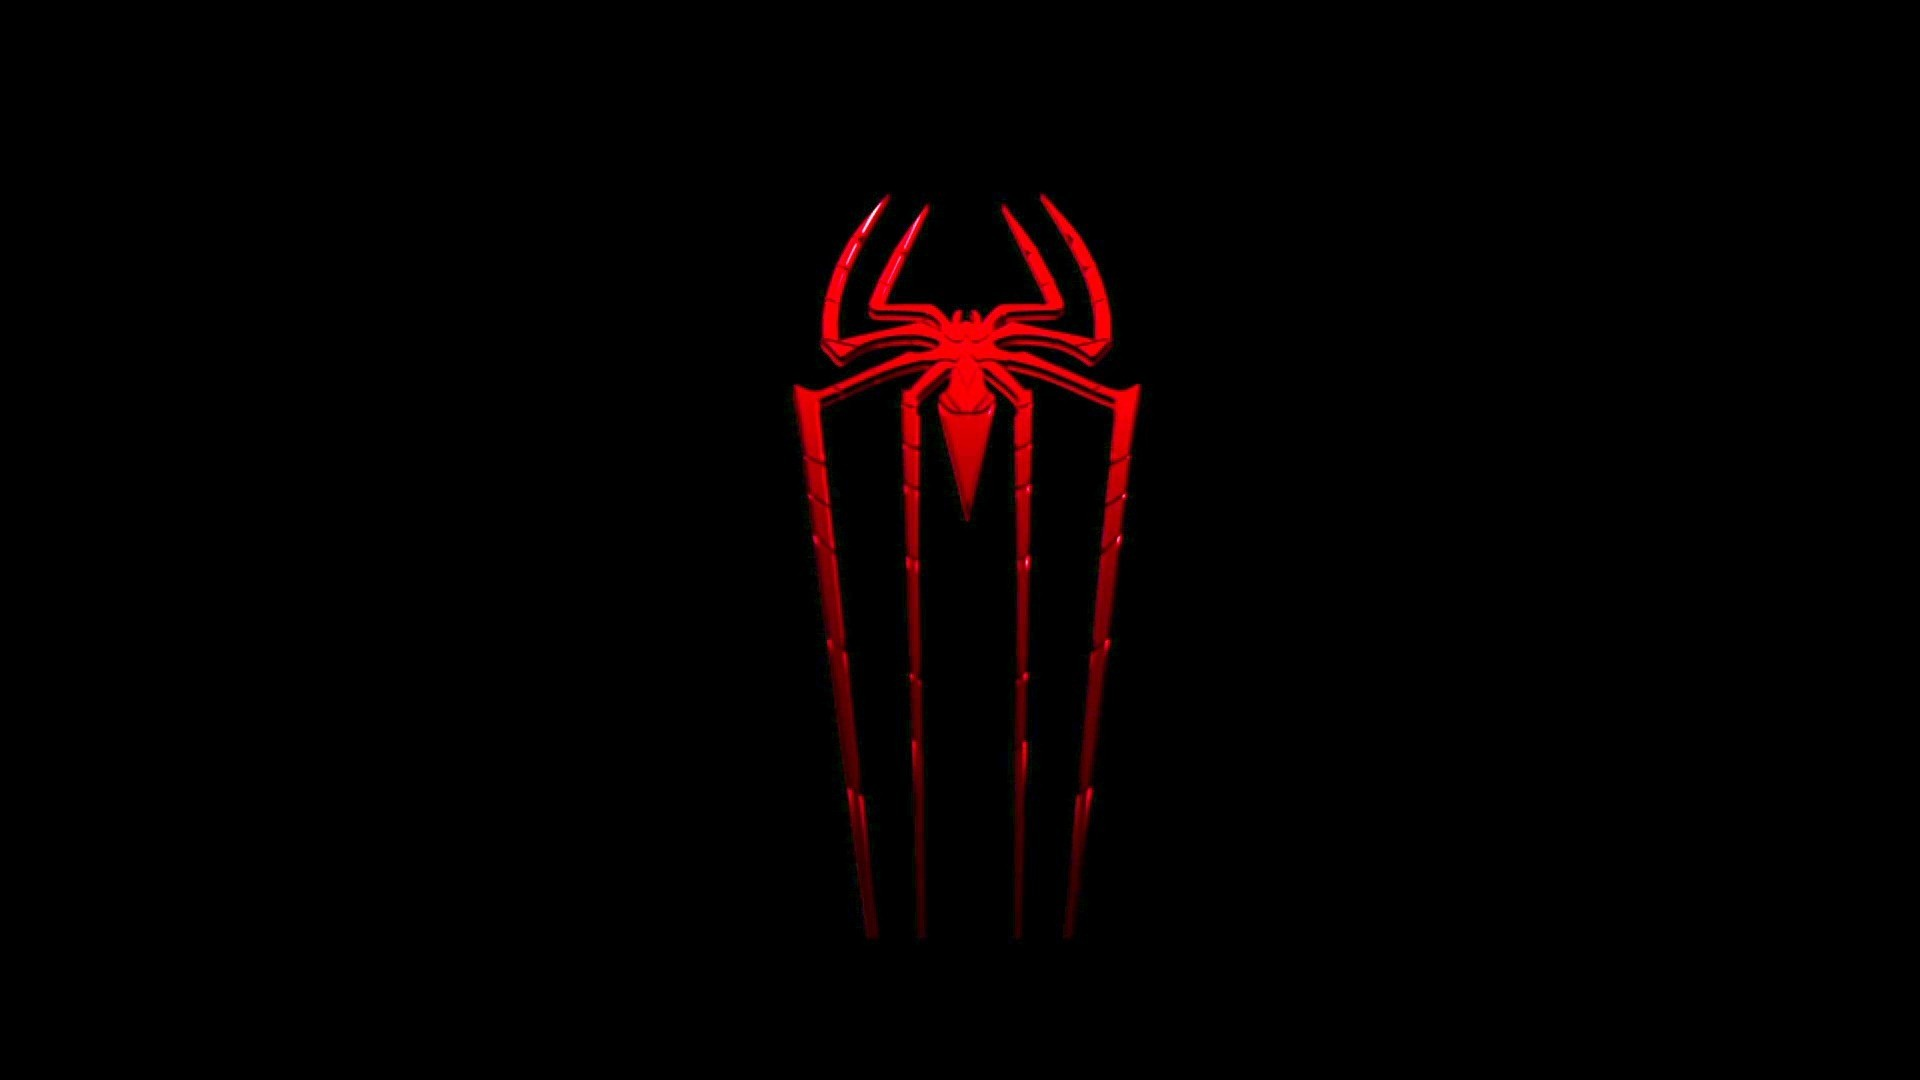 Image for Black Spiderman Logo Cool Wallpapers